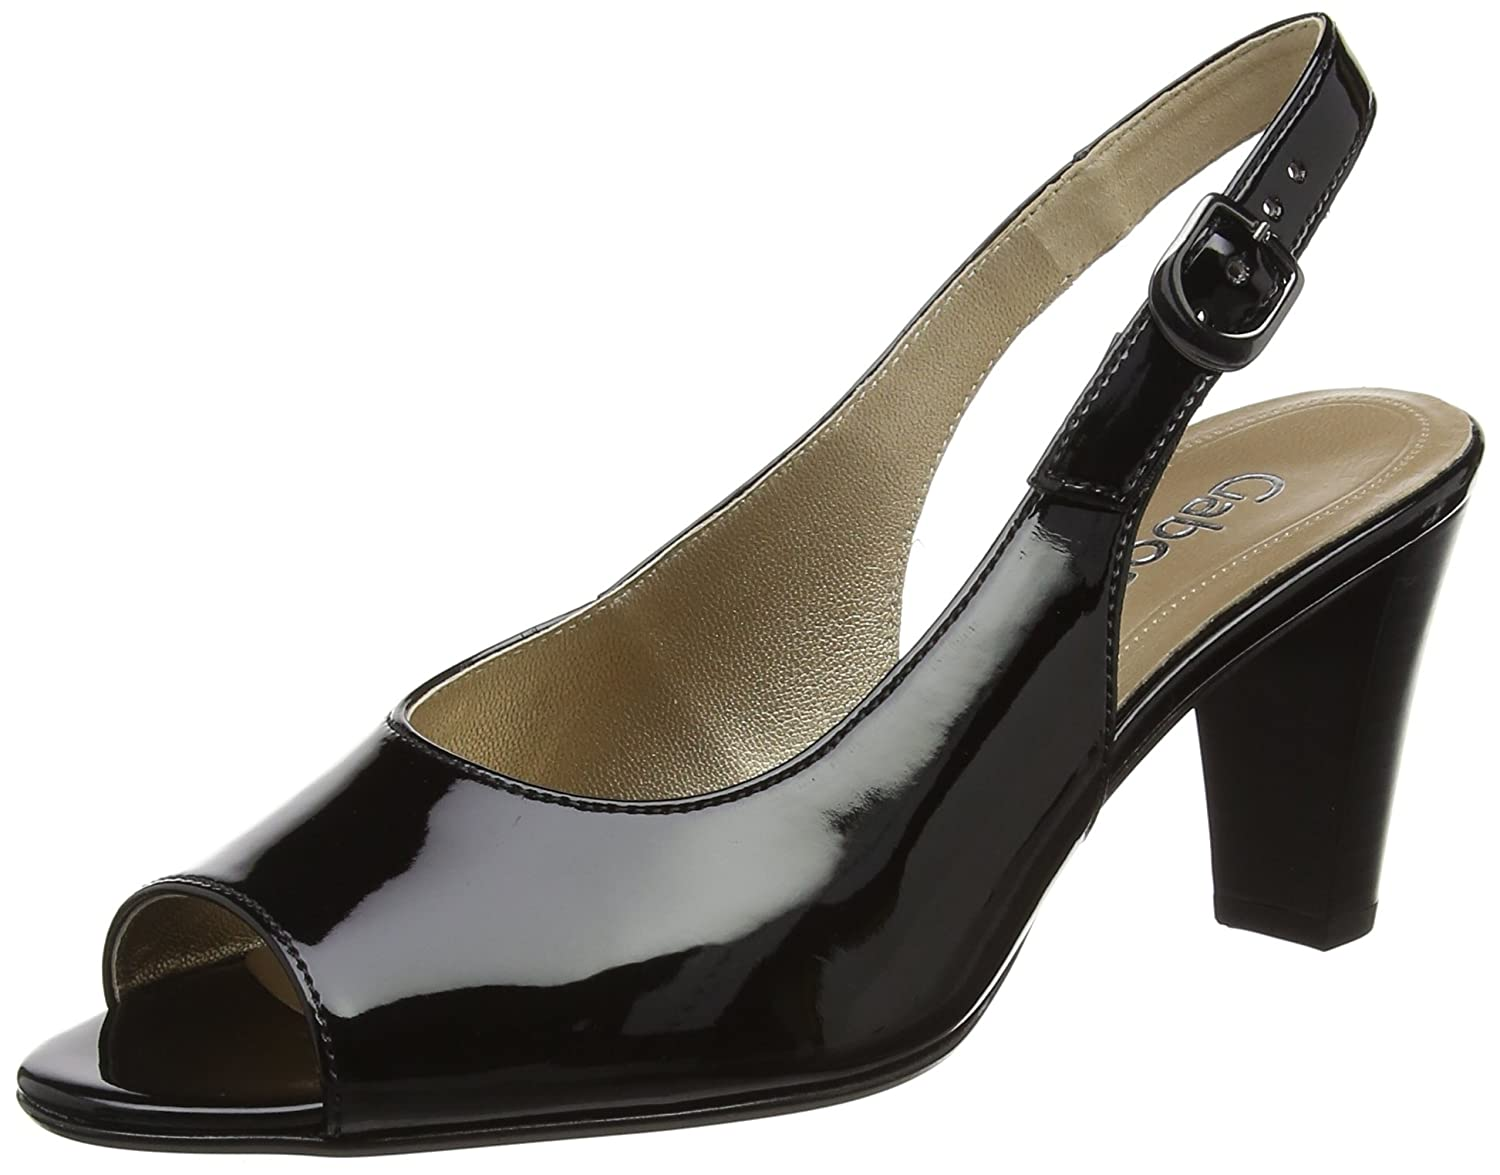 Gabor Shoes Fashion, Sandales Bout Ouvert Bout Femme Noir Noir Shoes (Noir 77) 29f35bb - automaticcouplings.space